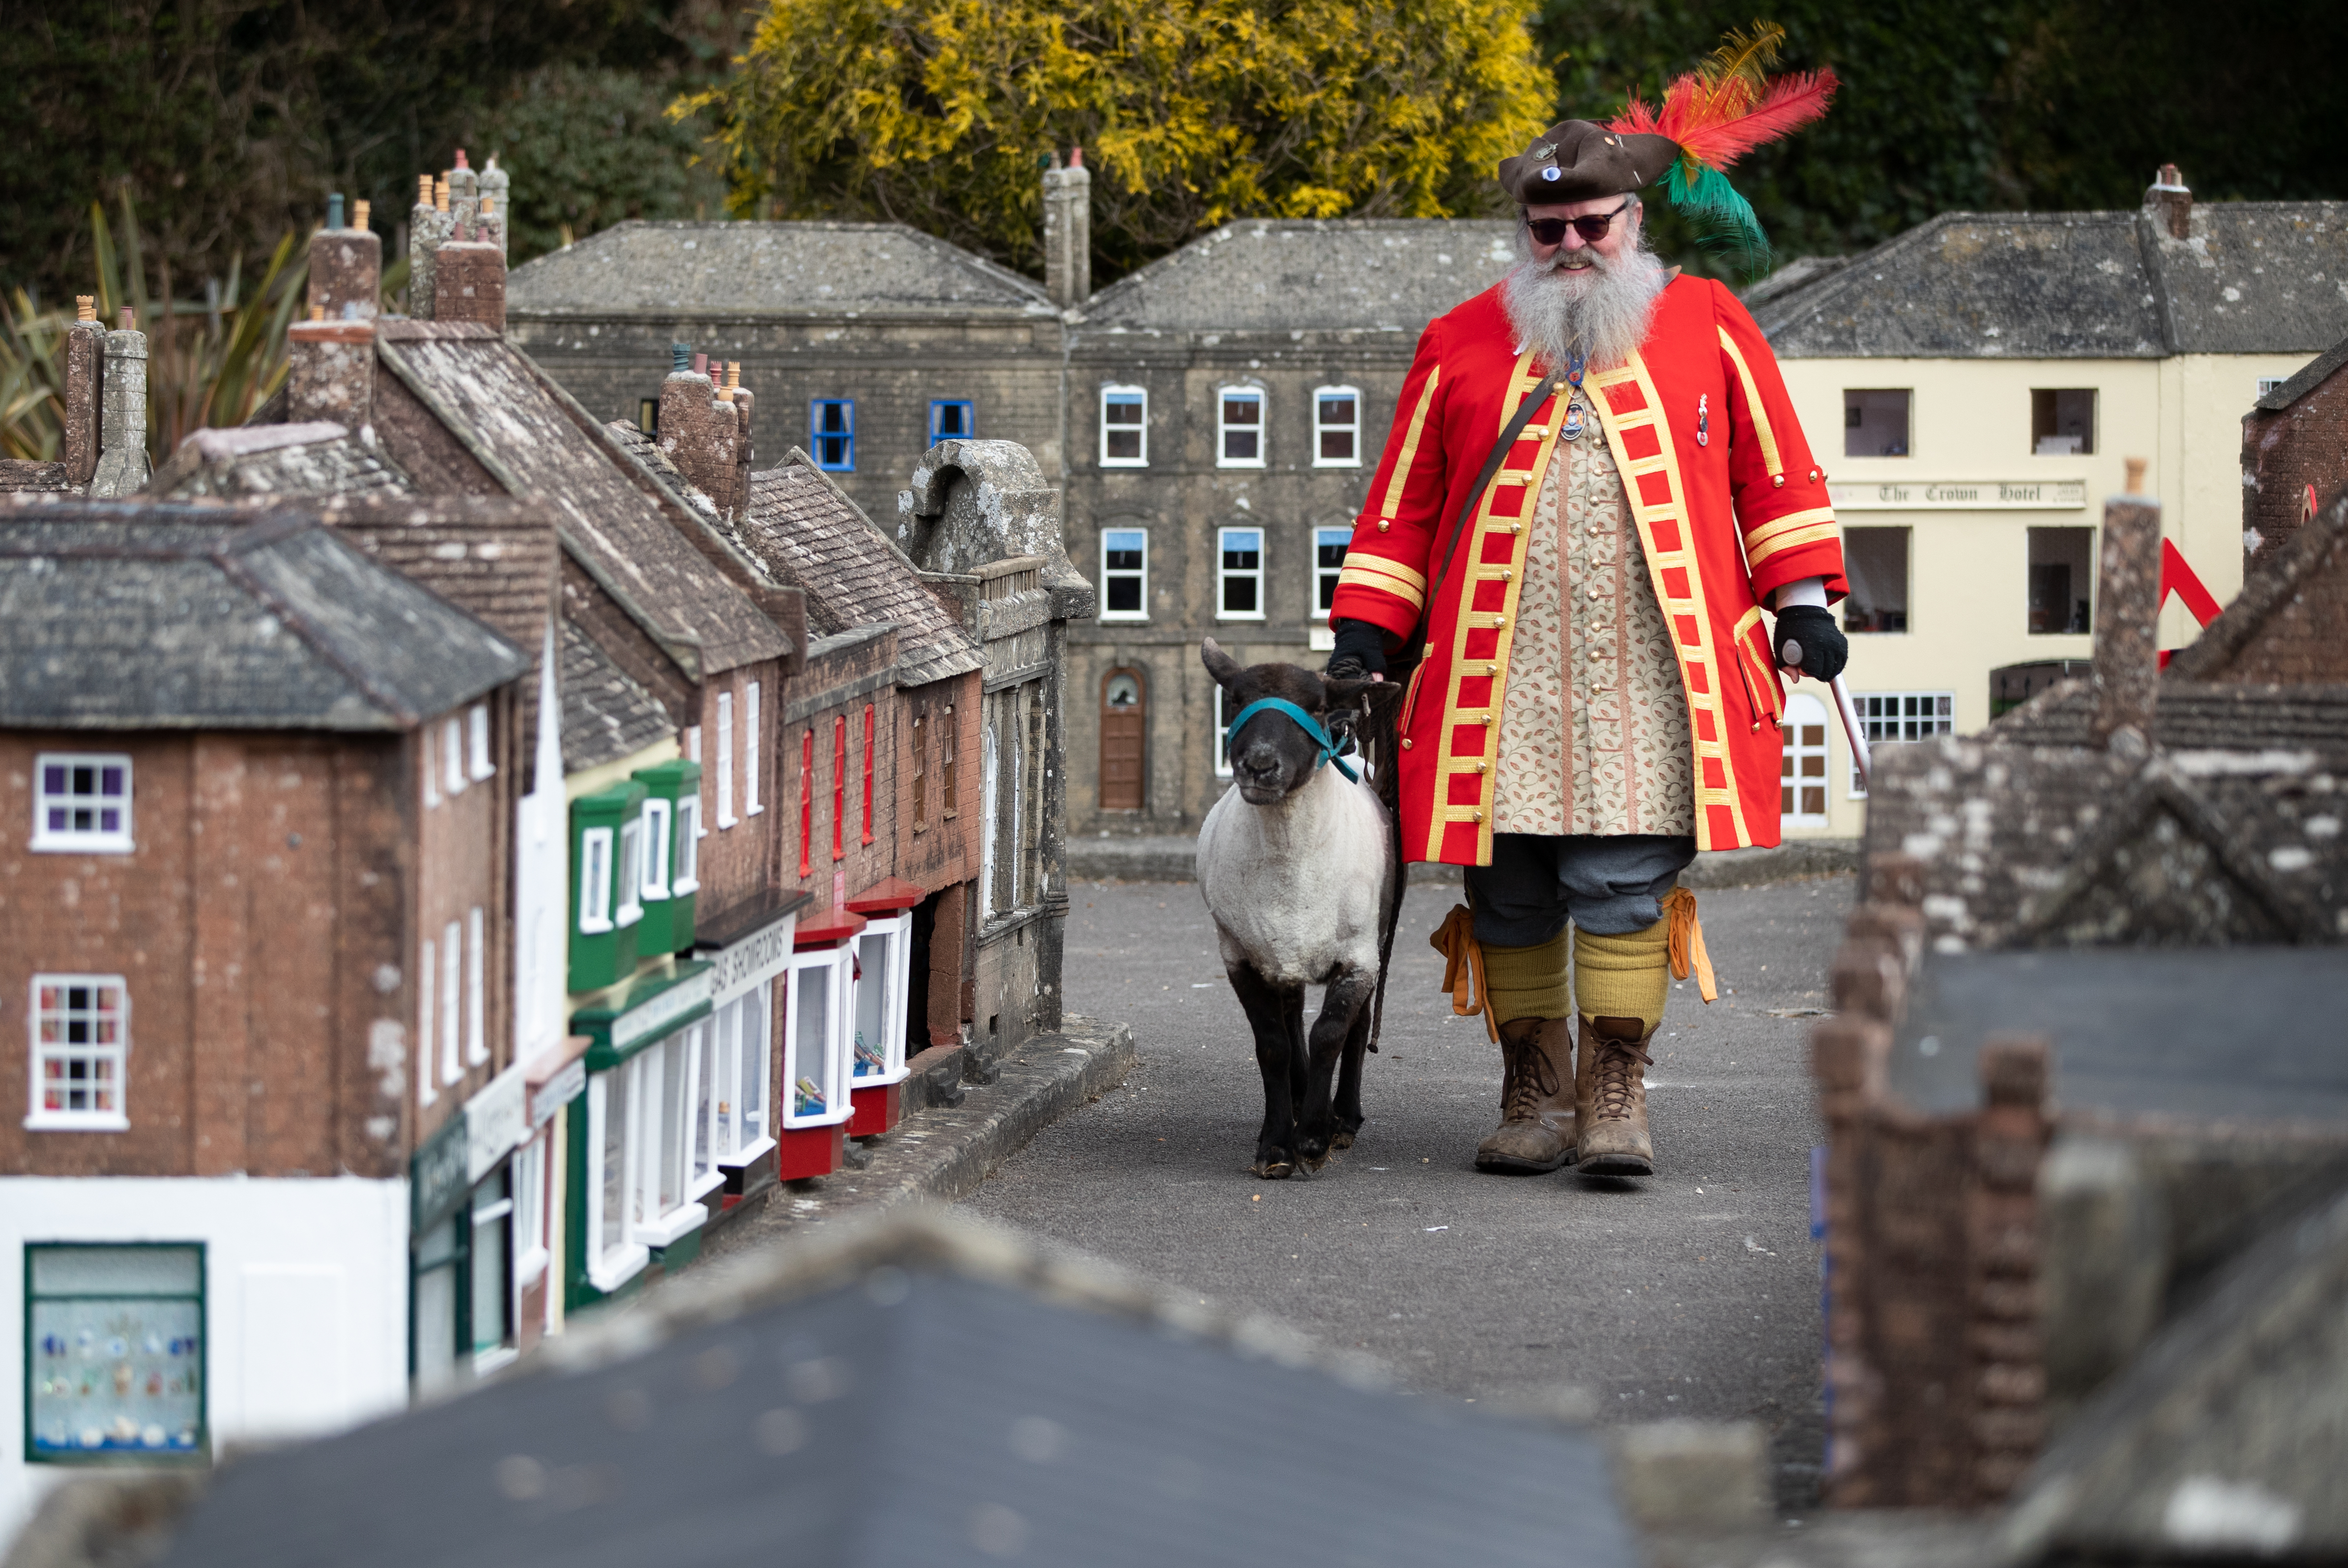 <p>Chris Brown, the Town Crier and Mayor's Serjant of Wimborne Minster, in Dorset, exercises his right as an Honorary Freeman to drive sheep through Wimborne without charge, albeit through the Wimborne Model Town, to herald their re-opening on 12th April after the easing of lockdown restrictions. Picture date: Wednesday April 7, 2021.</p>